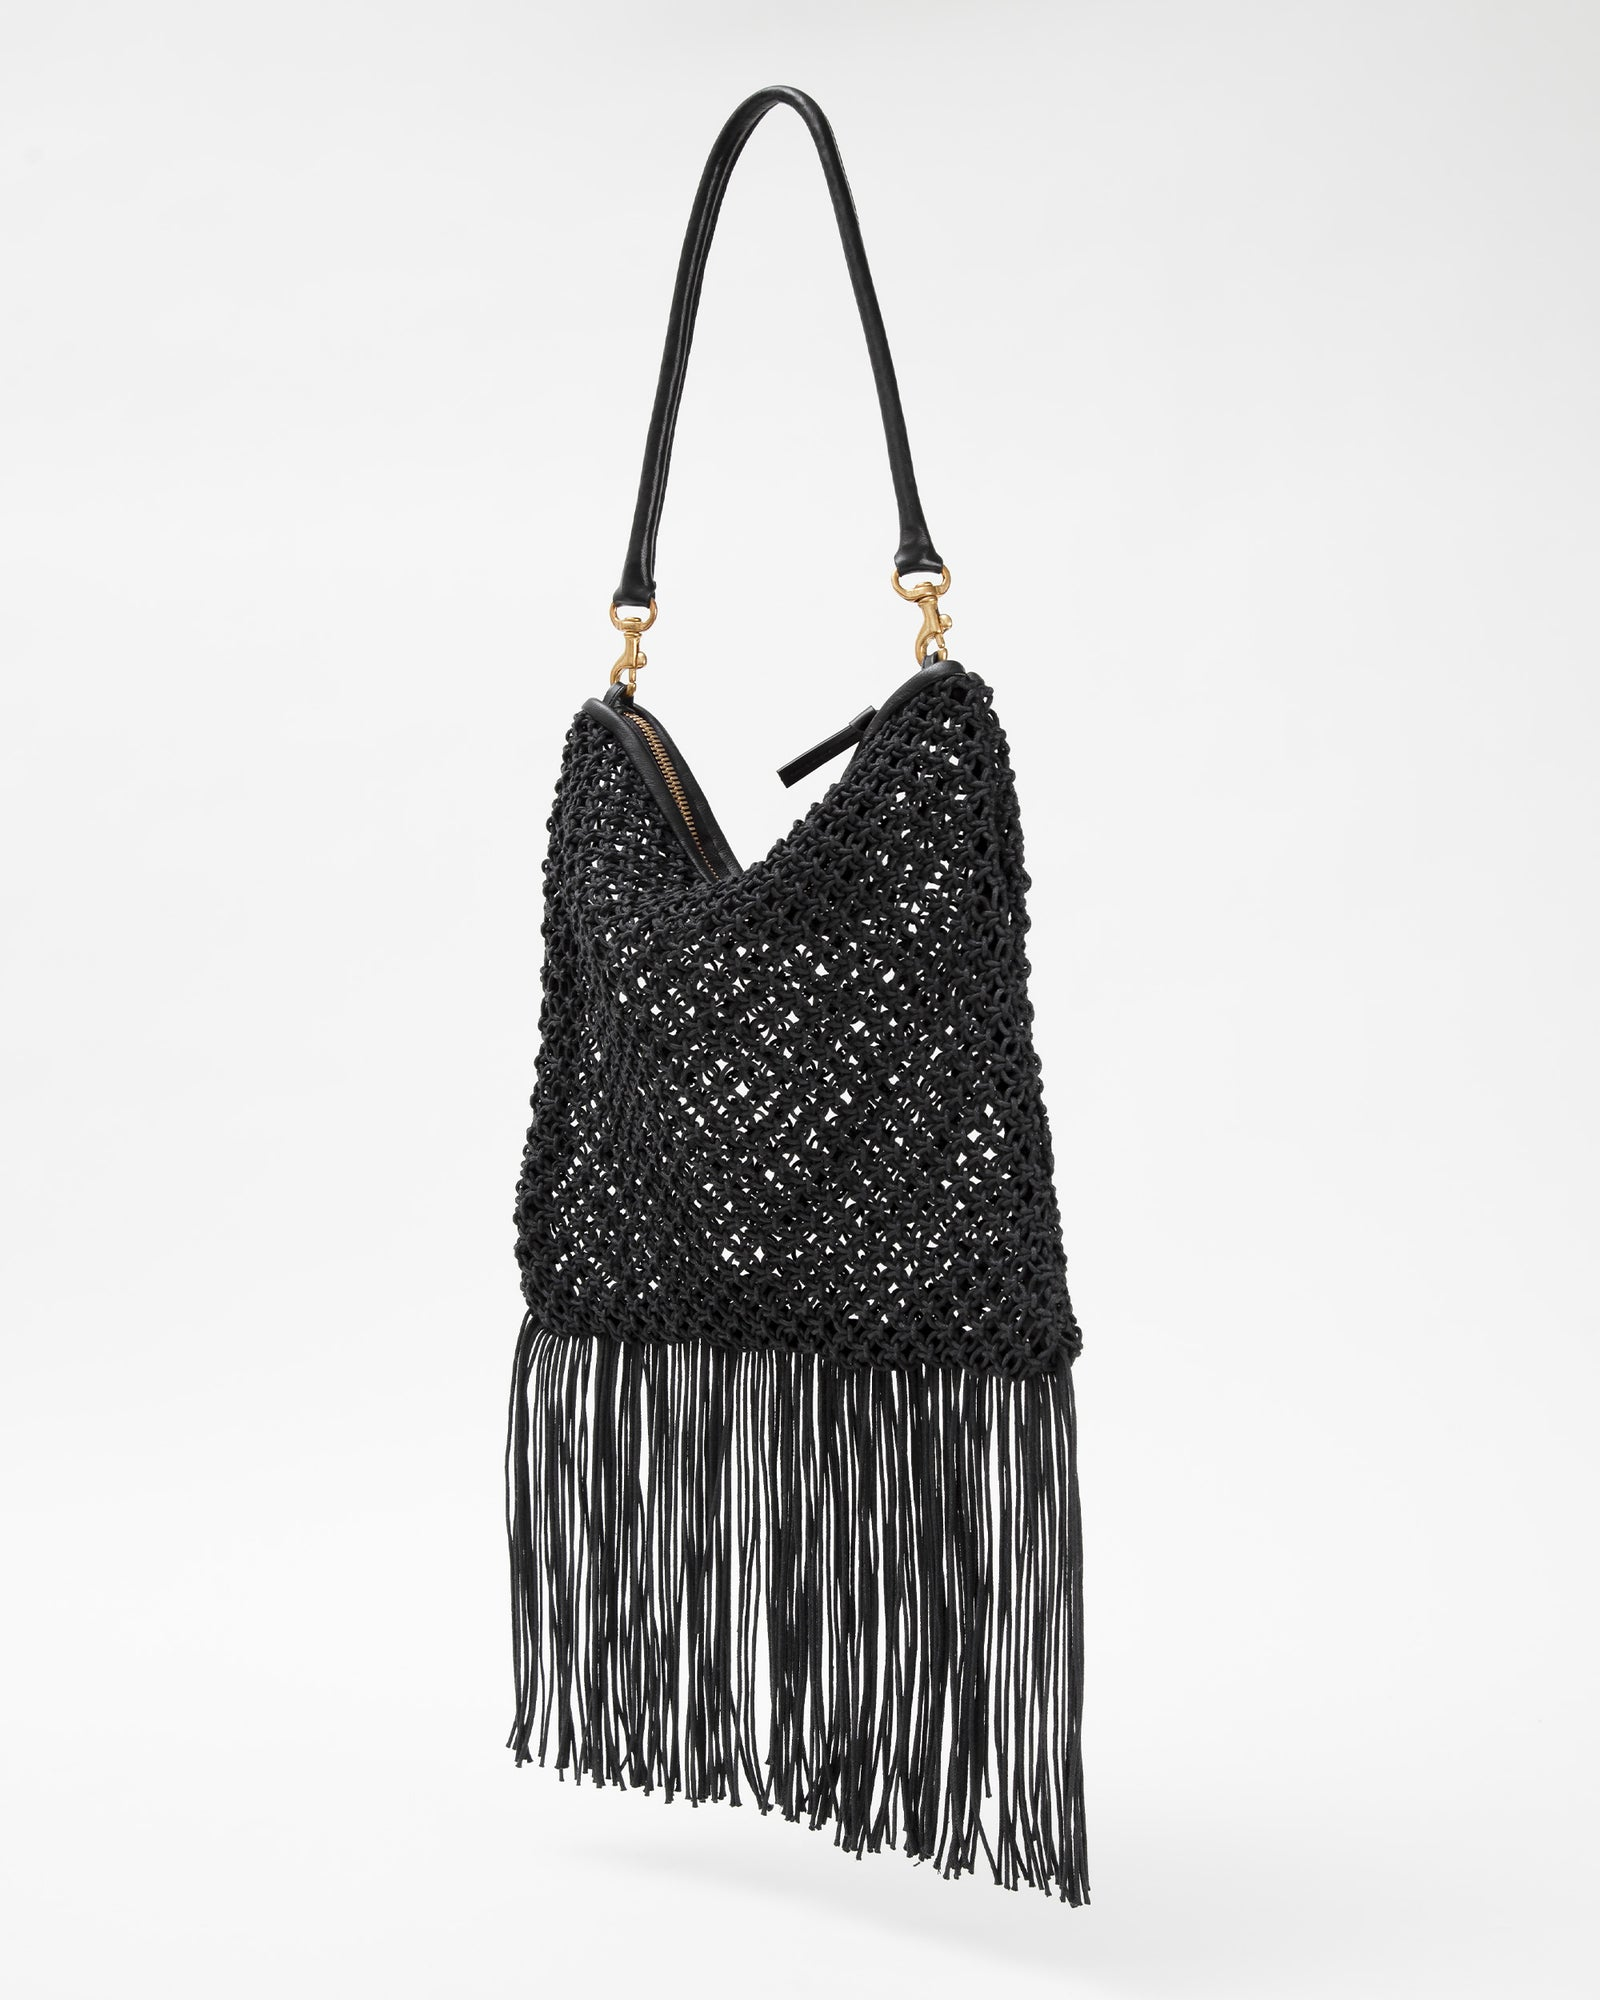 Black Circle Crochet Foldover Clutch w/ Tubular Shoulder Strap - Back